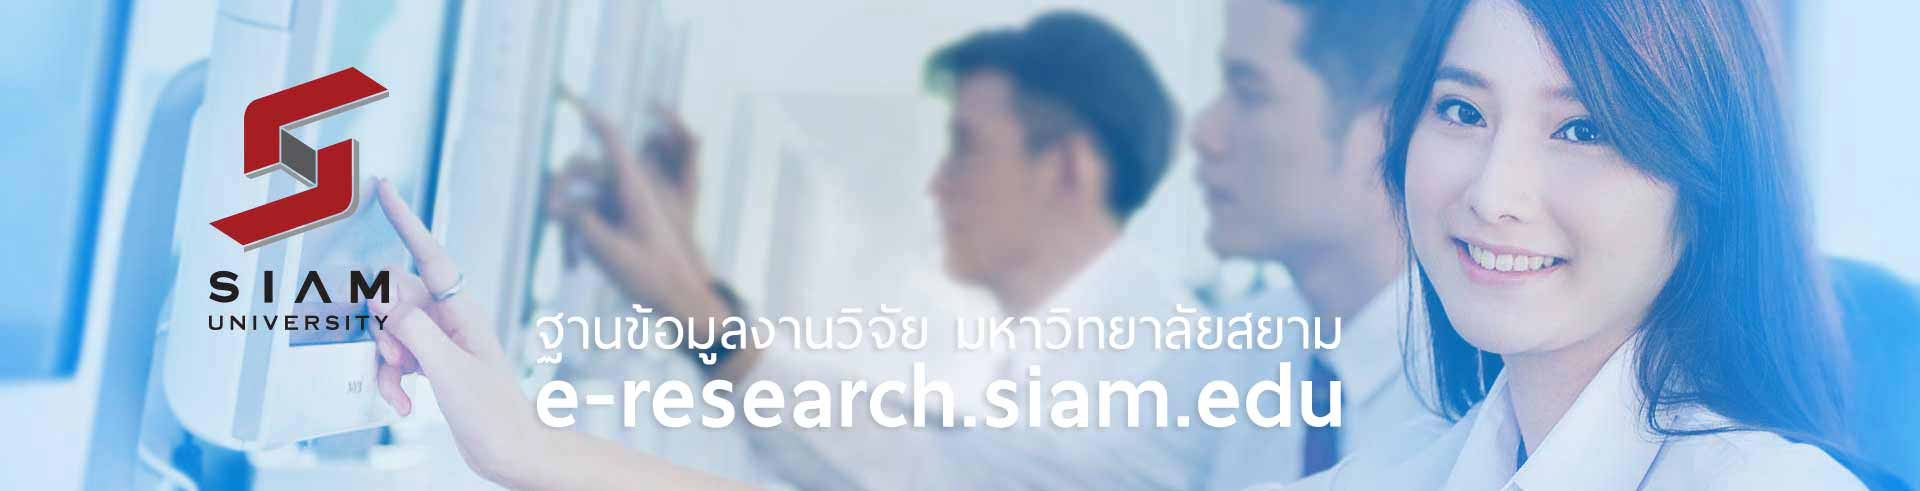 MARKETING RESEARCH: AN EMPIRICAL STUDY ON CONSUMPTION OF EDUCATIONAL PRODUCTS IN CHINESE UNIVERSITIES (60-0782) - ฐานข้อมูลงานวิจัย มหาวิทยาลัยสยาม